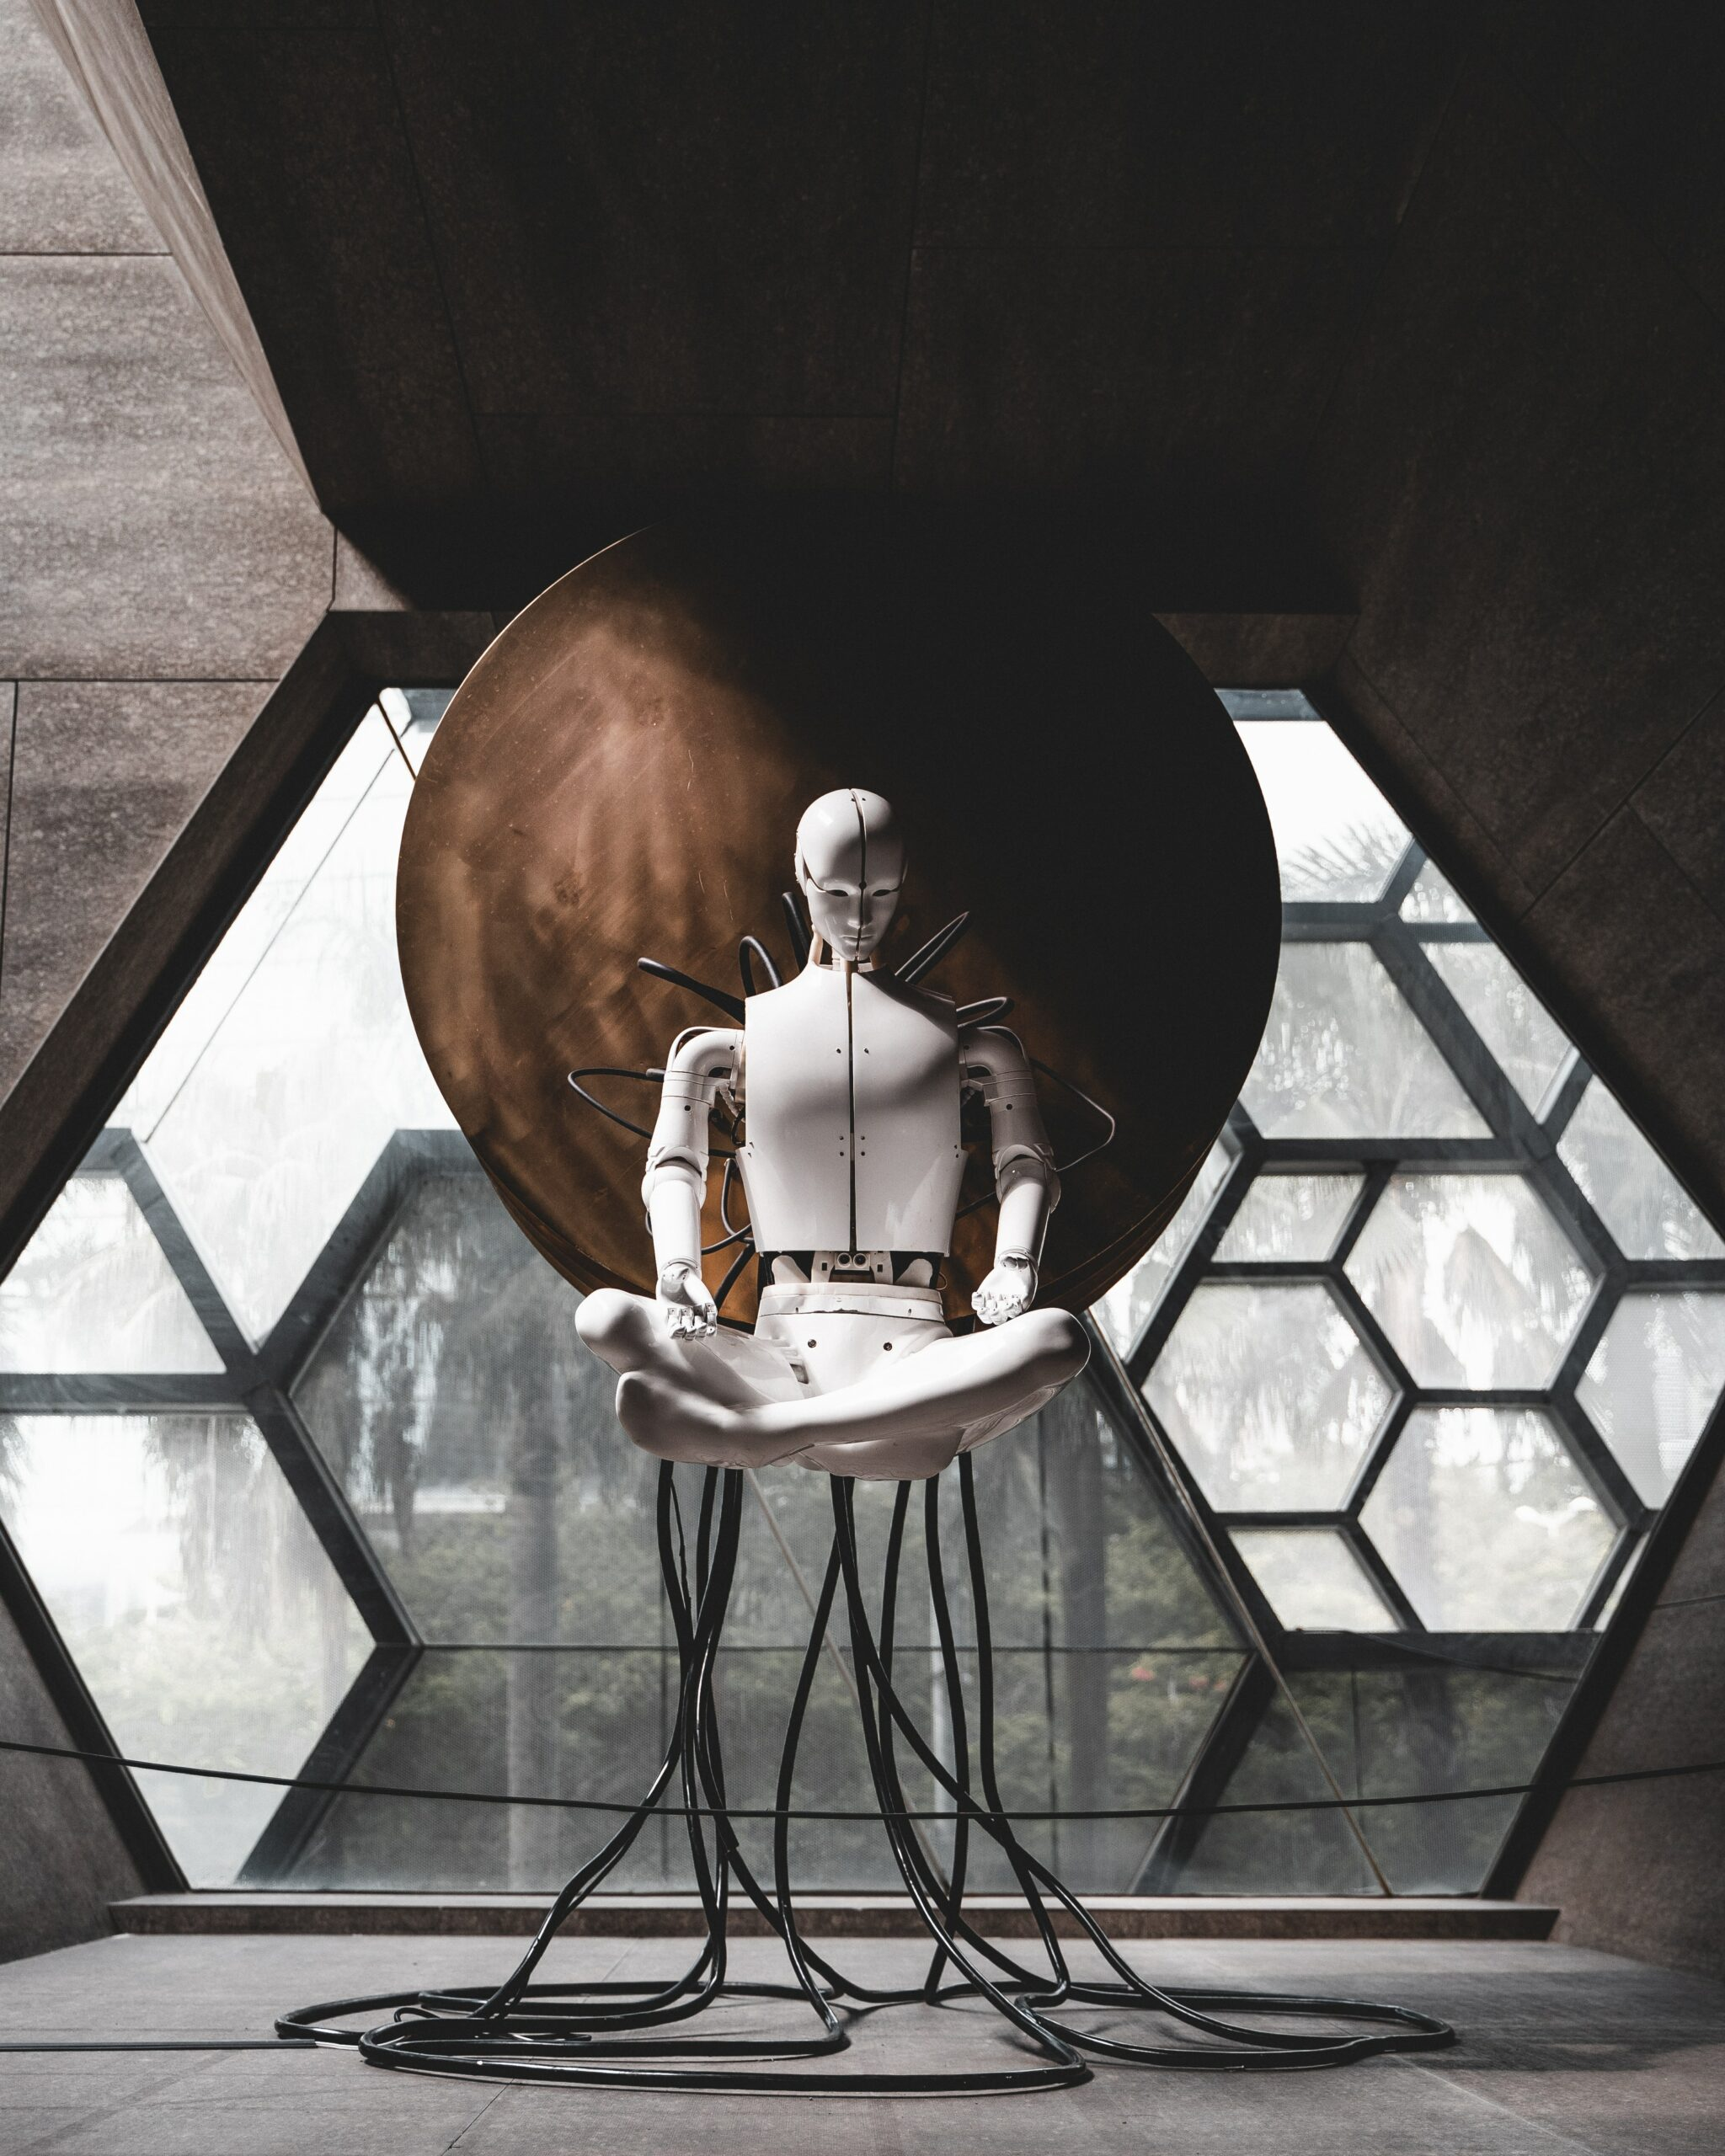 ai in data rooms